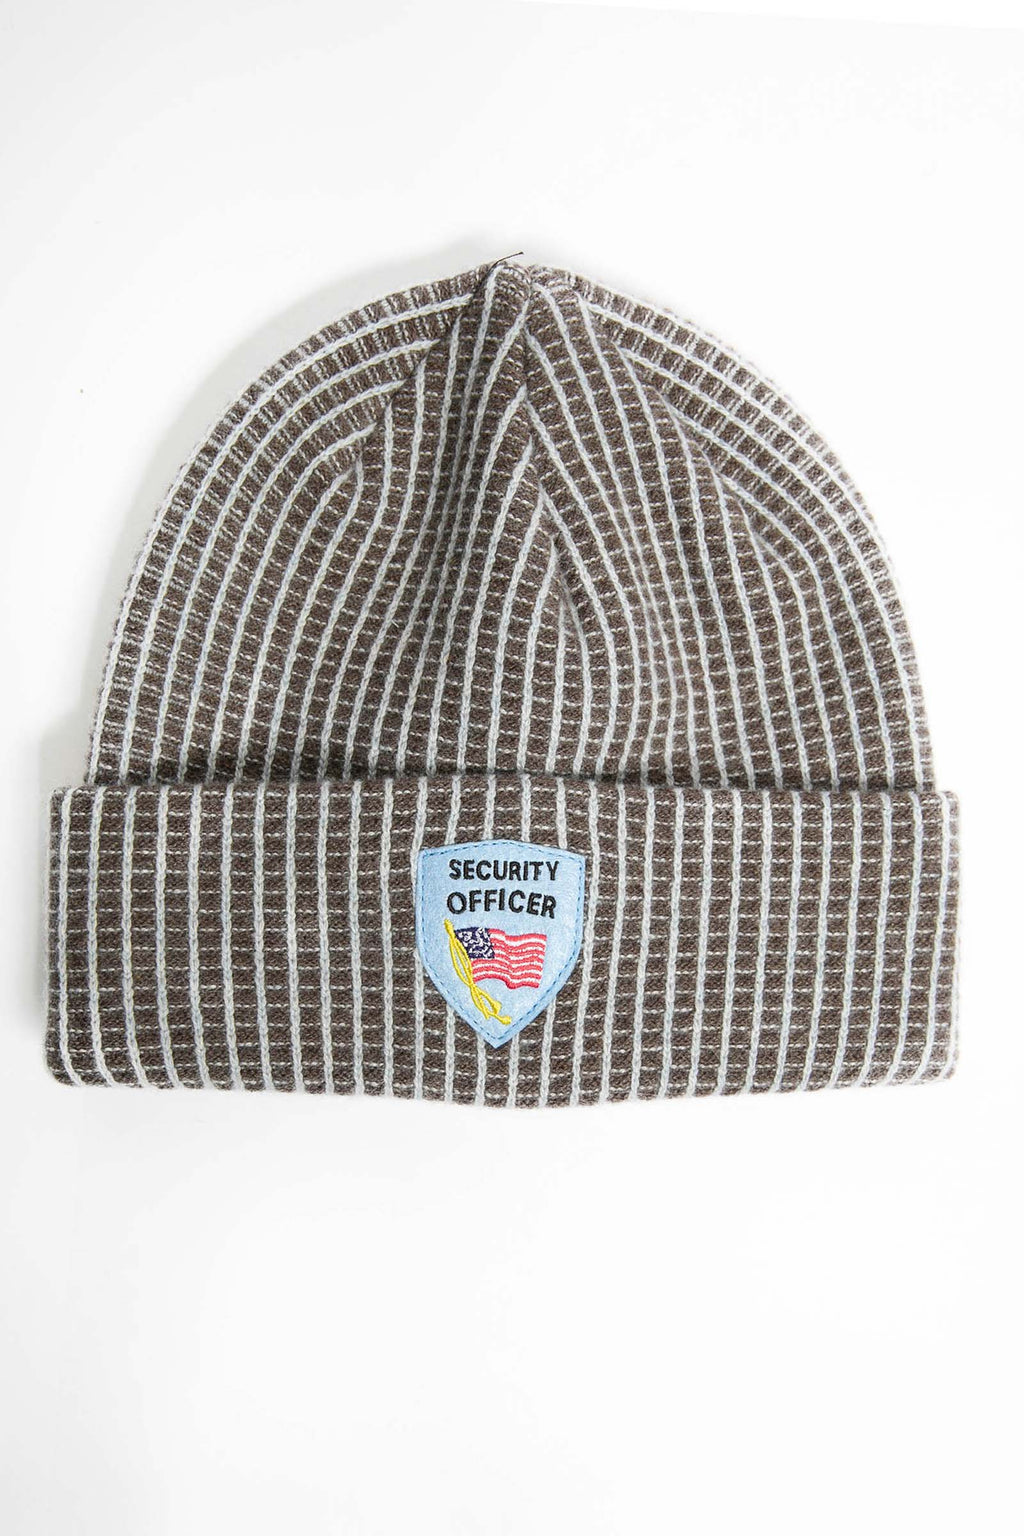 I.S.M. 'Security Officer' Grey Cashmere Beanie